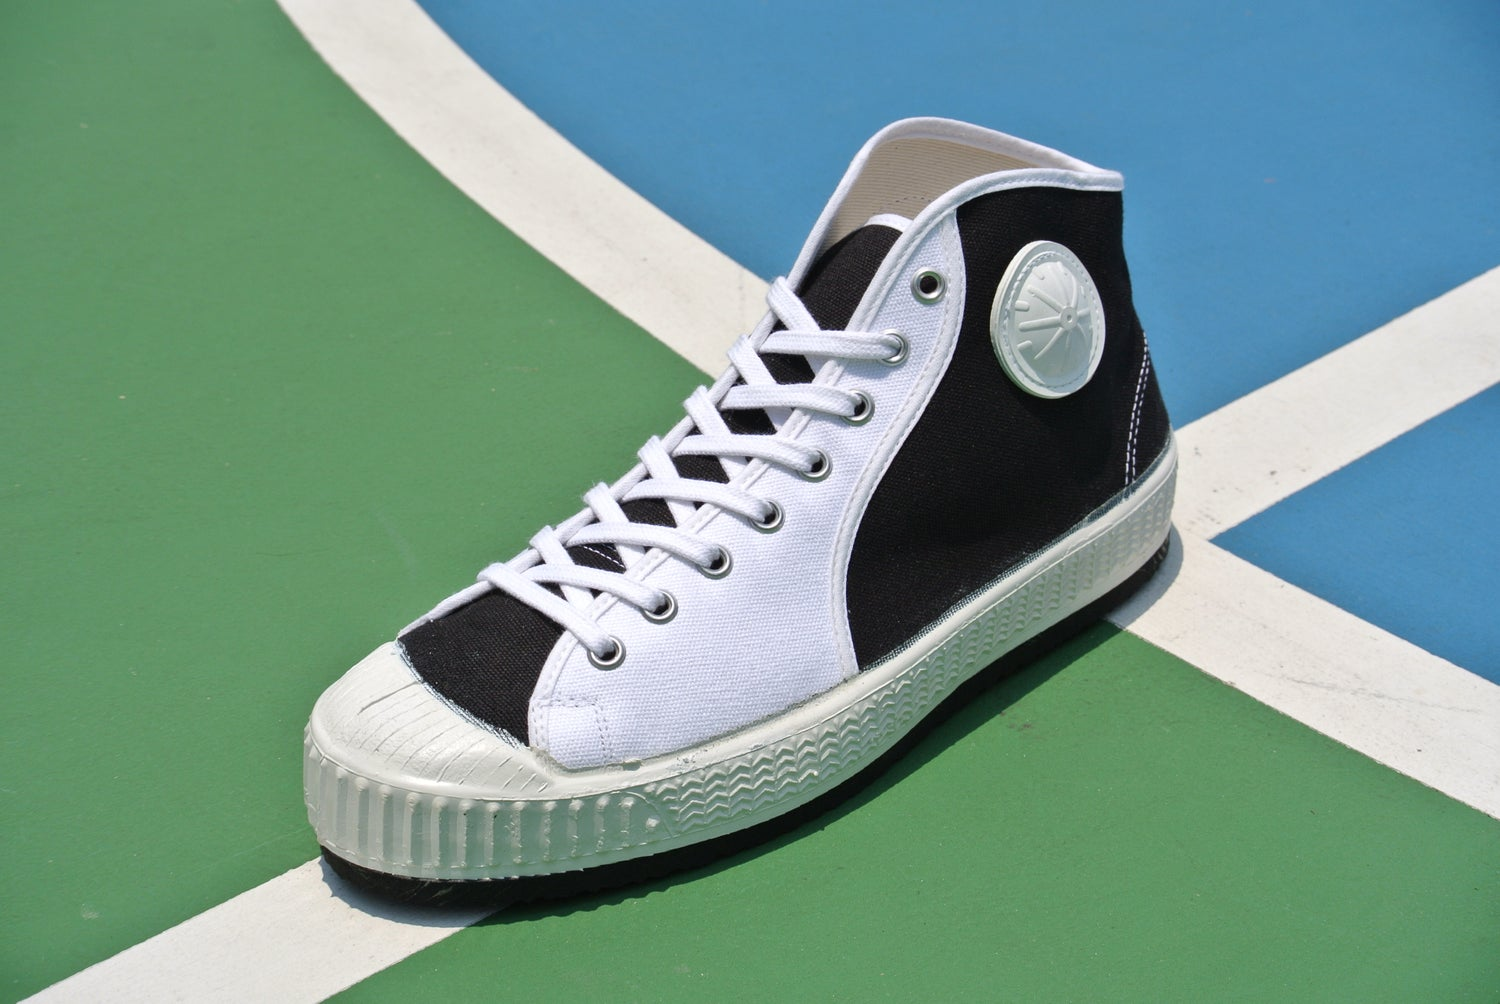 Image of VEGANCRAFT Czech vintage mid top trainer sneaker shoes made in Slovakia